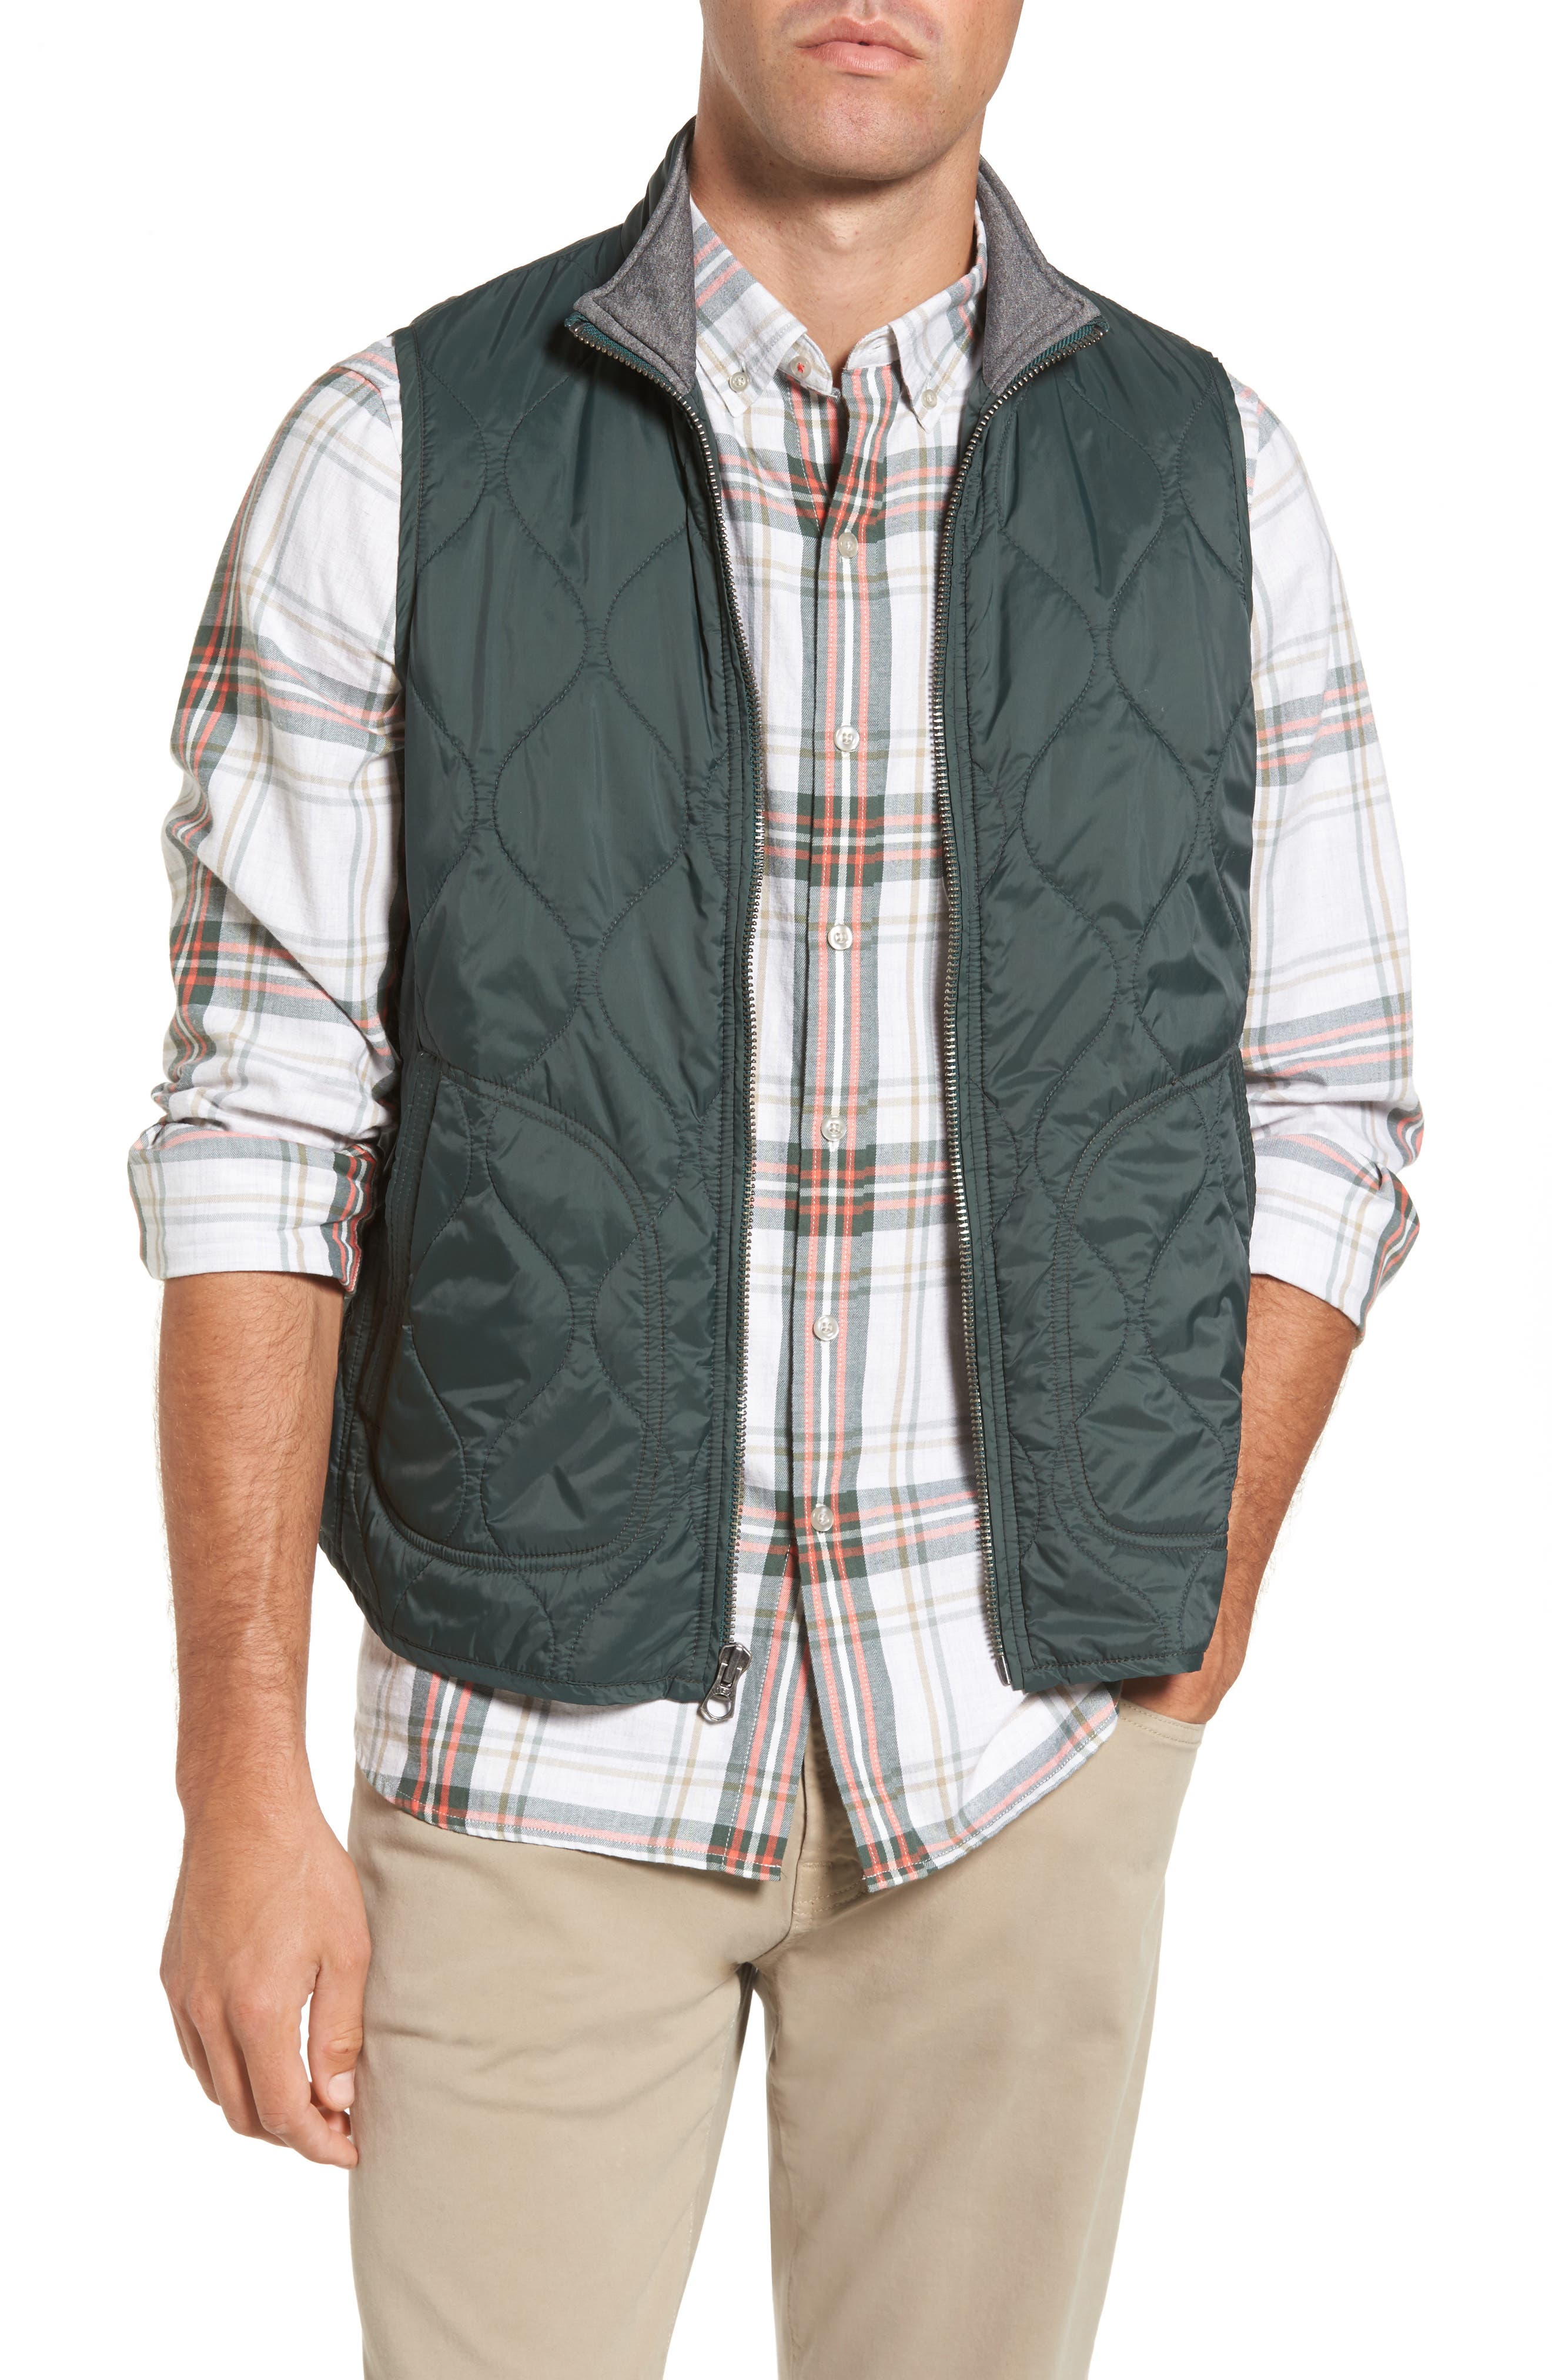 Nylon Quilted Vest,                             Main thumbnail 1, color,                             302